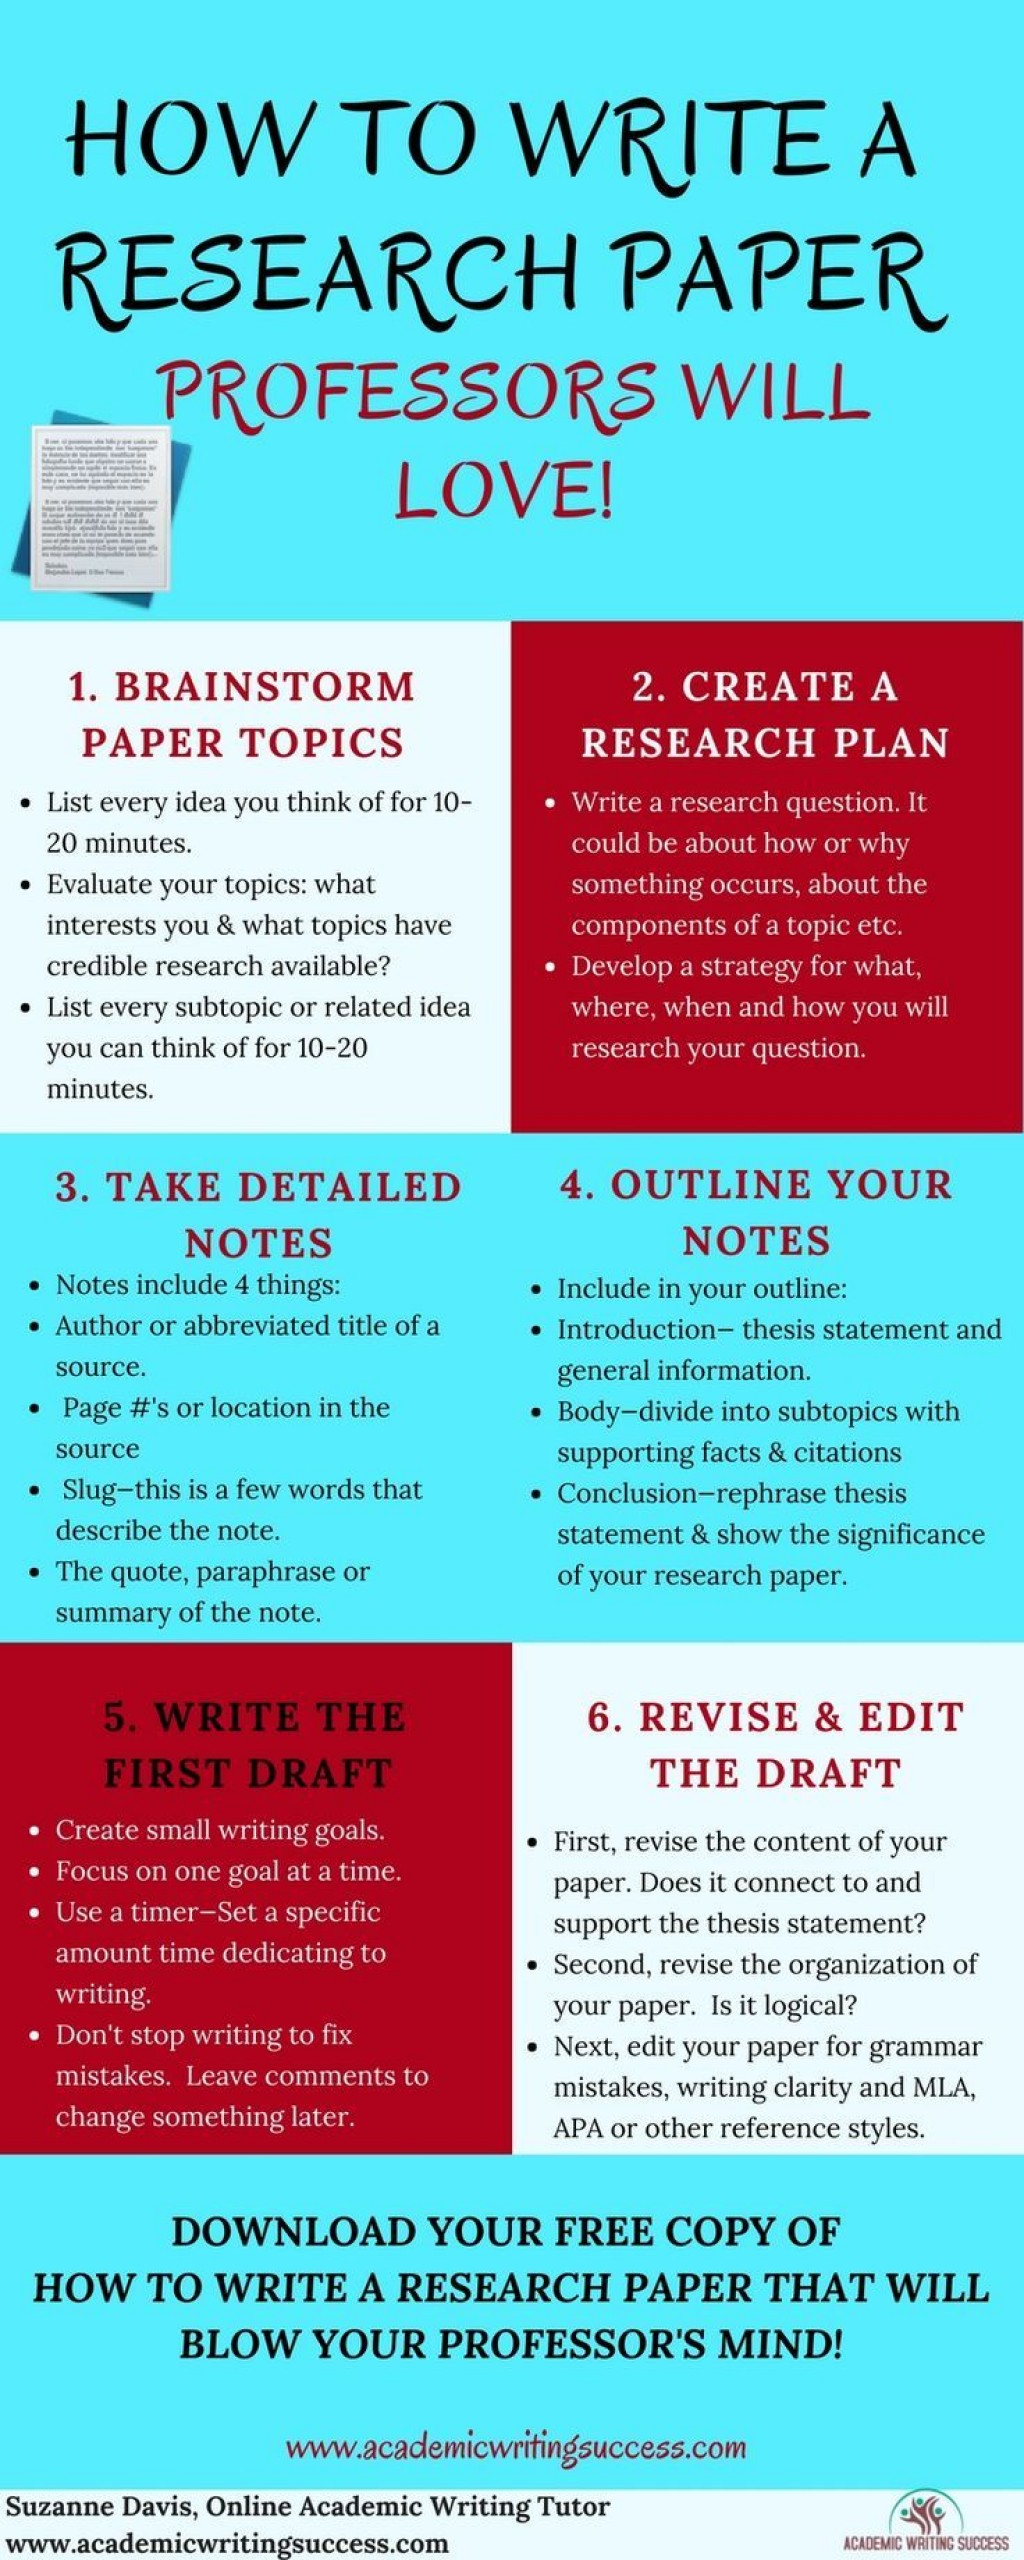 002 Research Paper Tips Awesome College For Students Writing A Large